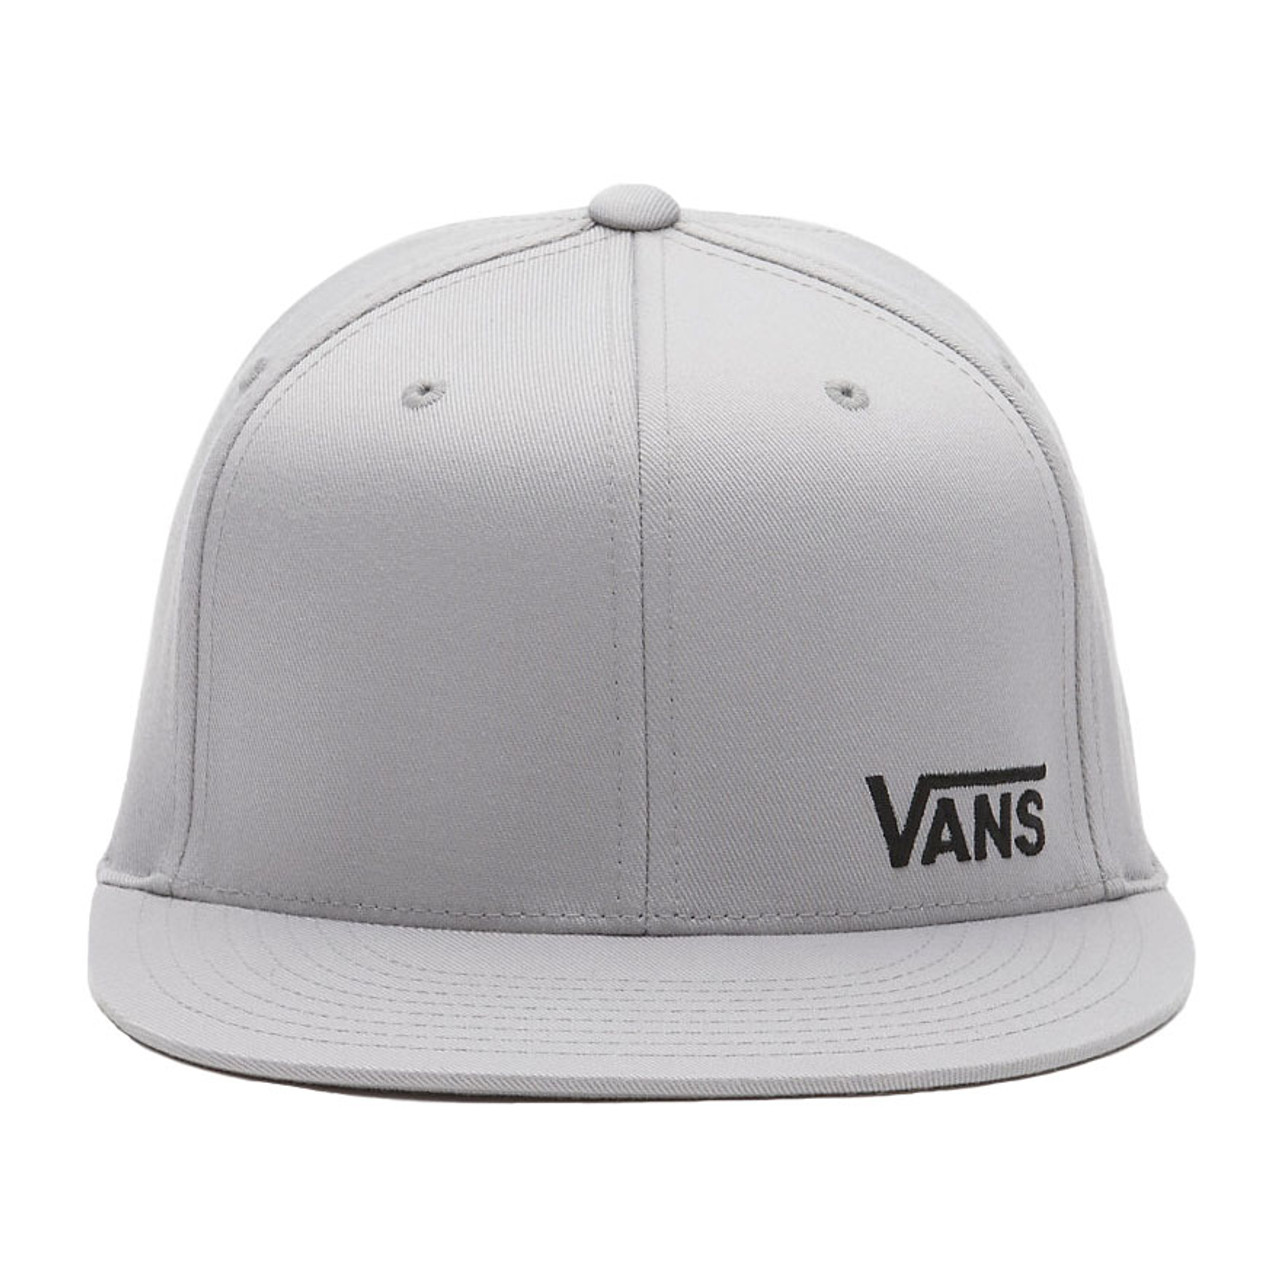 237fa6dc6 Vans Hat - Splitz - Frost Grey - Surf and Dirt